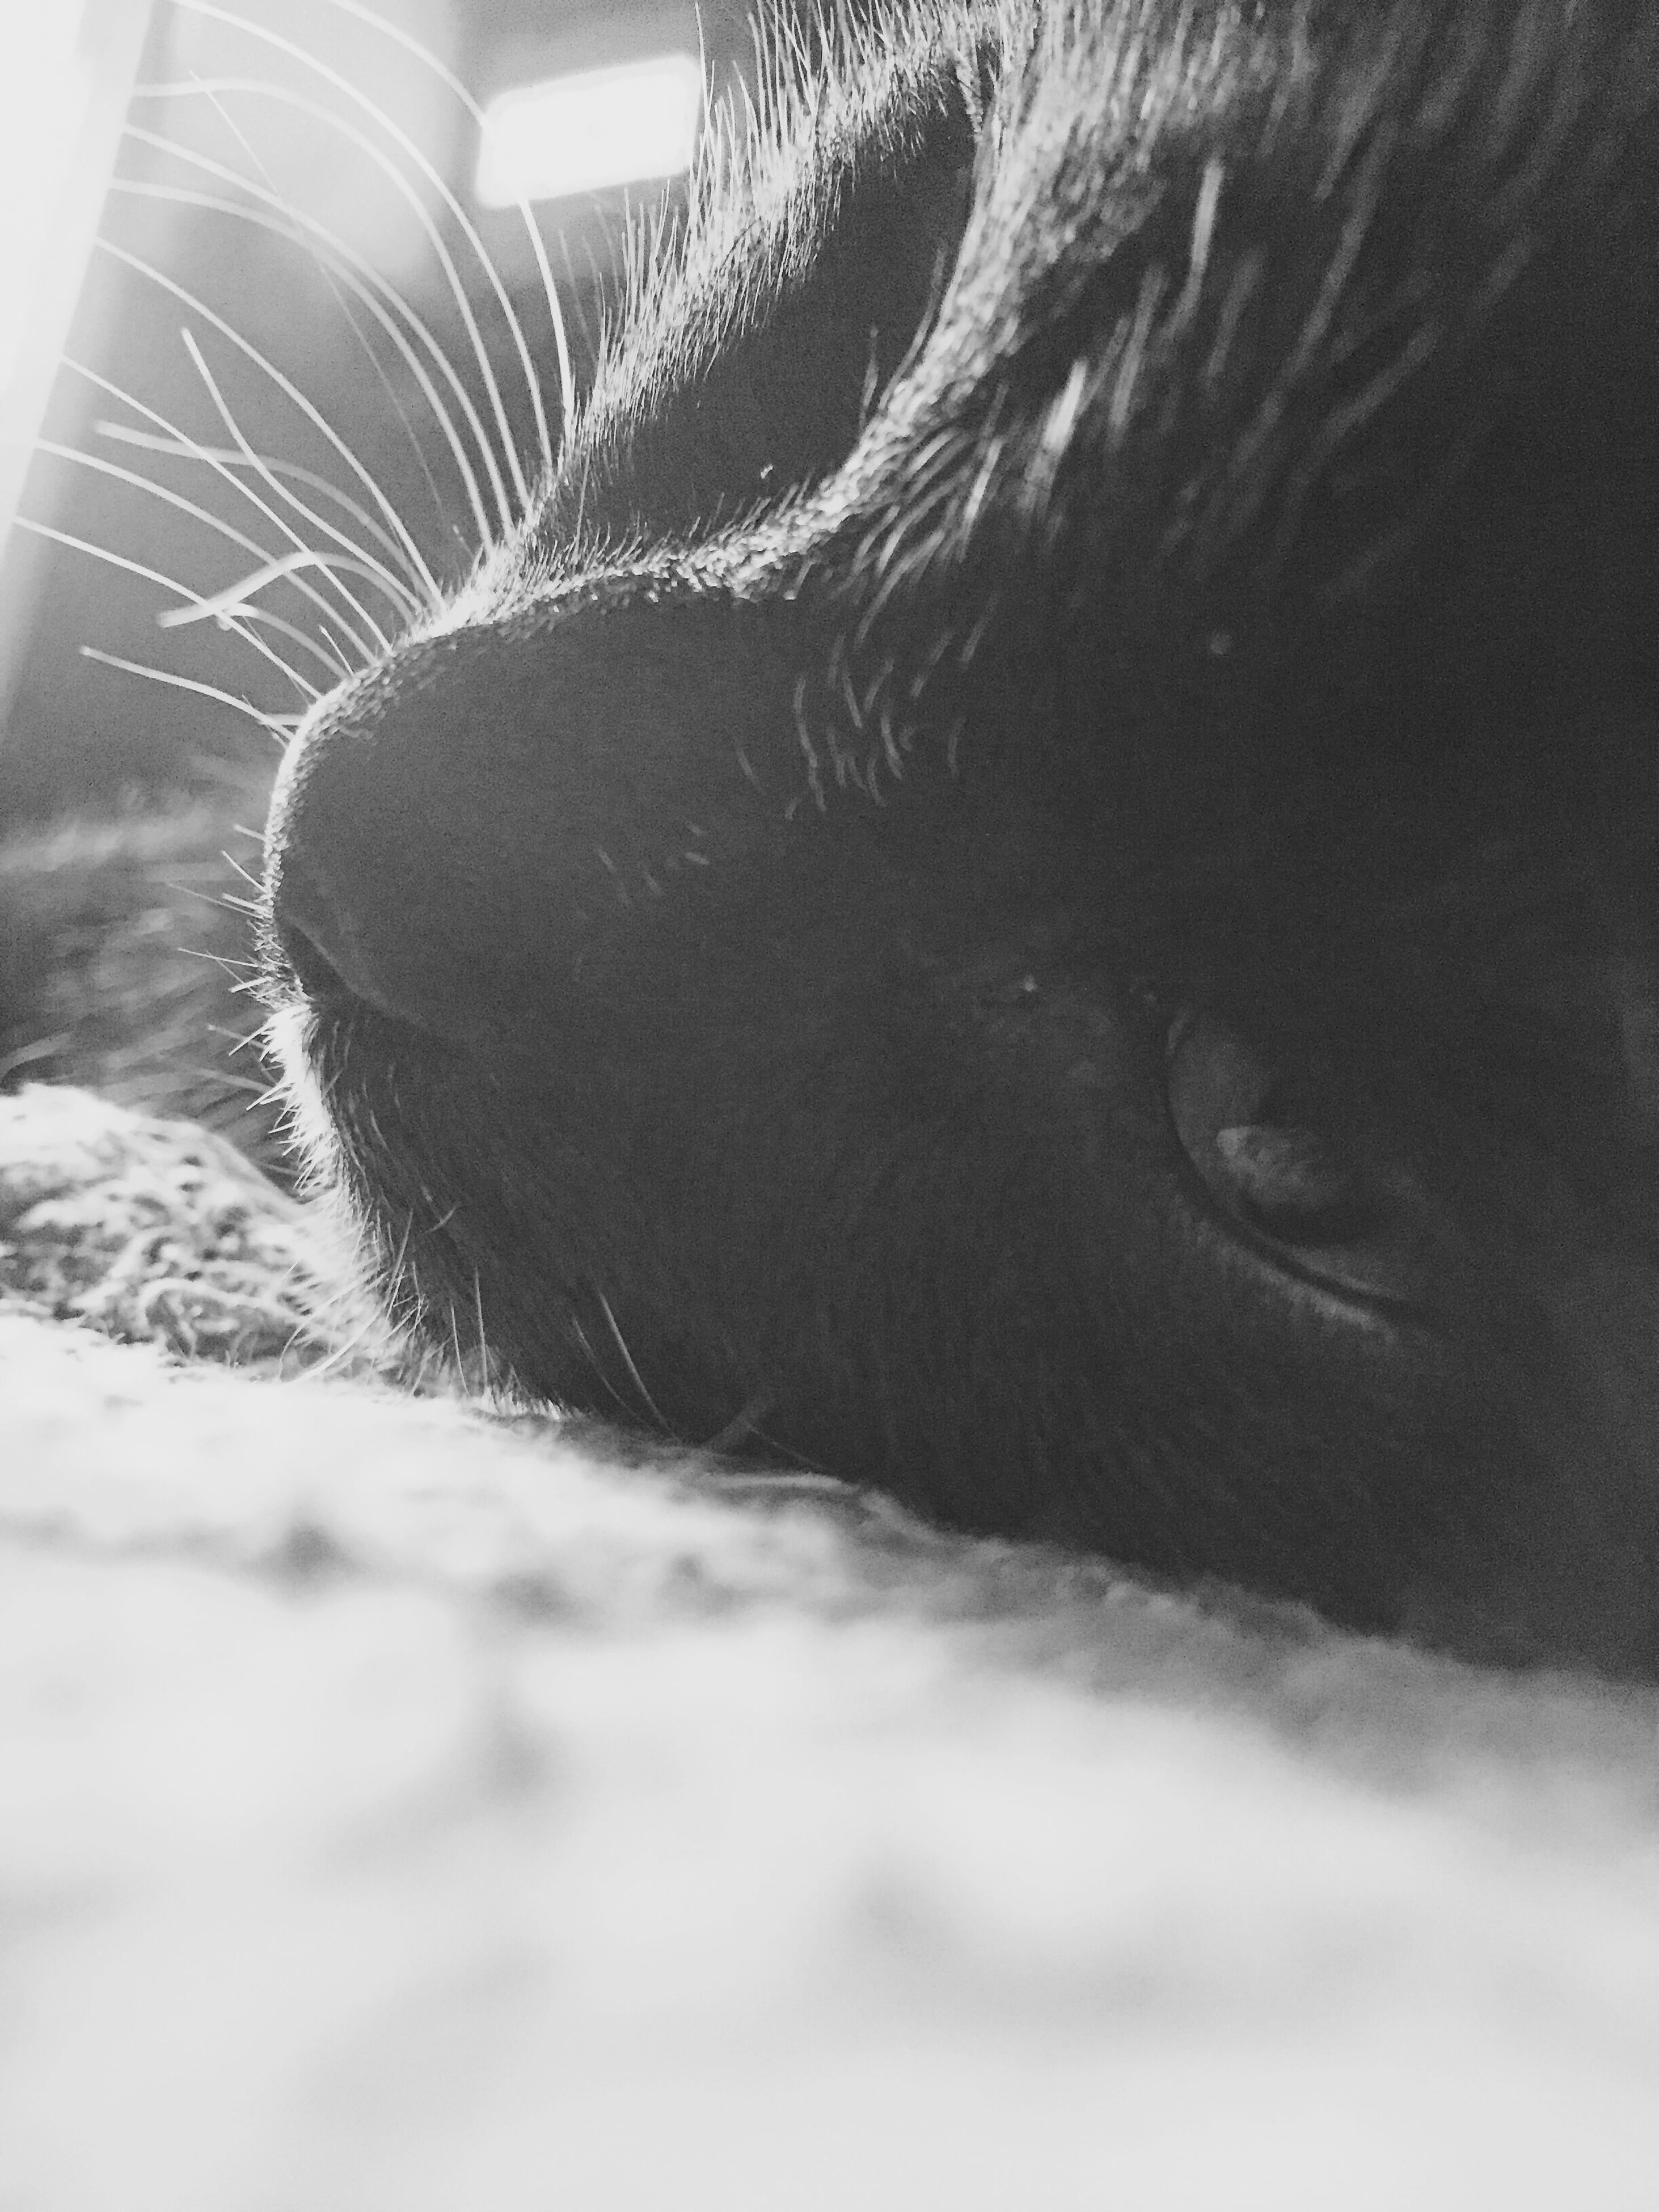 domestic animals, indoors, pets, one animal, mammal, relaxation, animal themes, domestic cat, sleeping, bed, cat, close-up, resting, lying down, high angle view, feline, no people, eyes closed, blanket, home interior